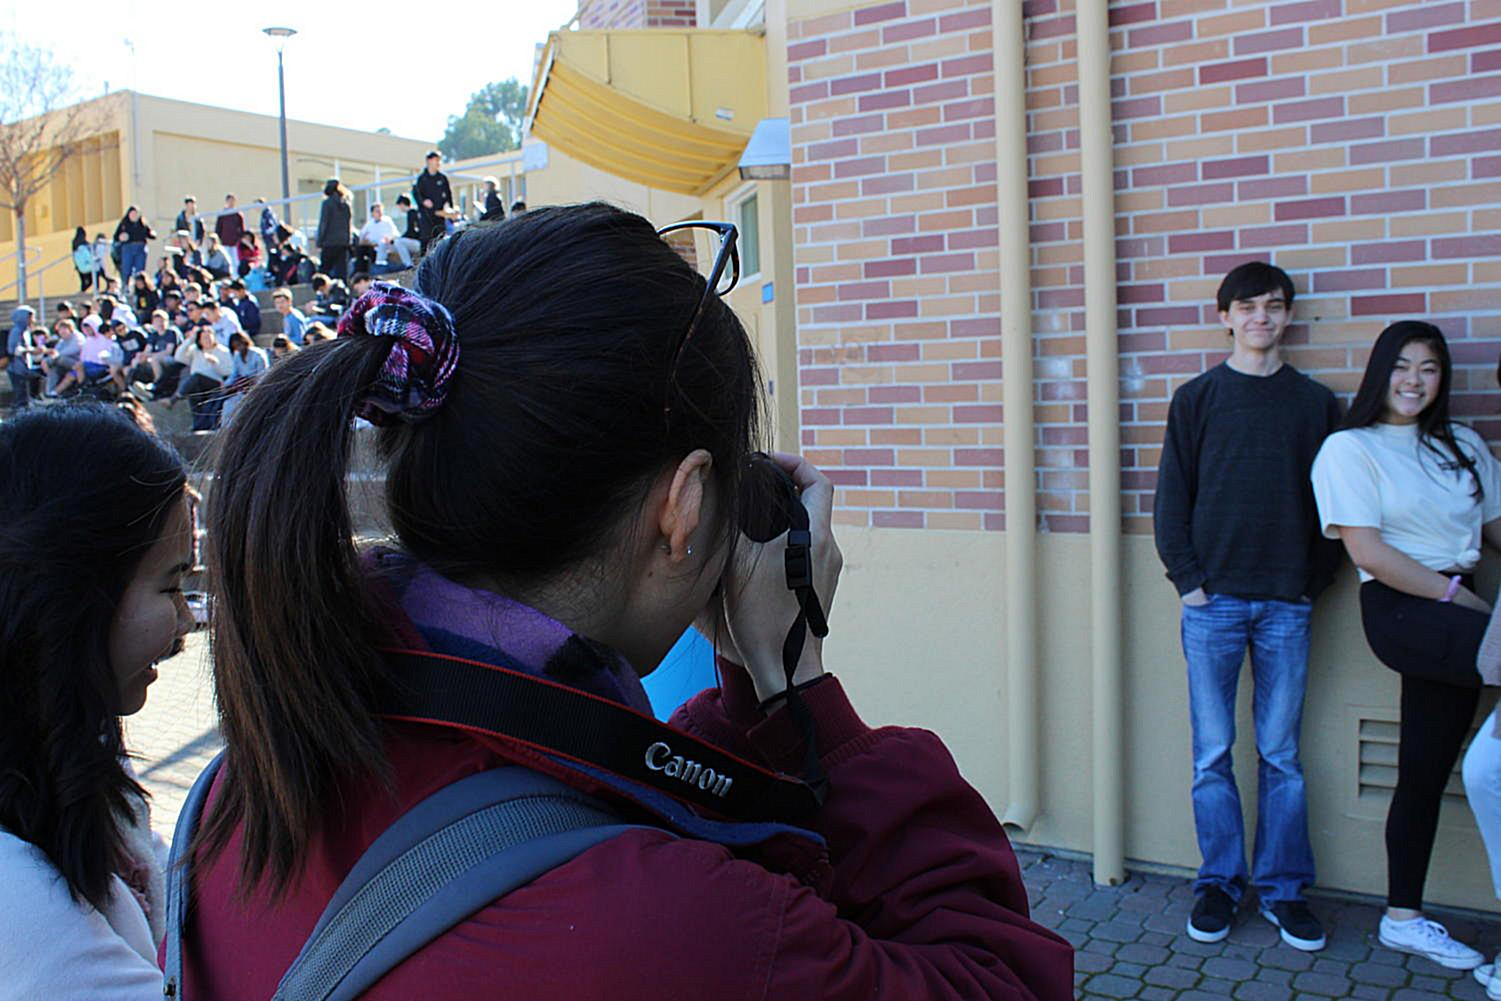 Lauren Chong takes a club photo for the yearbook in the quad.